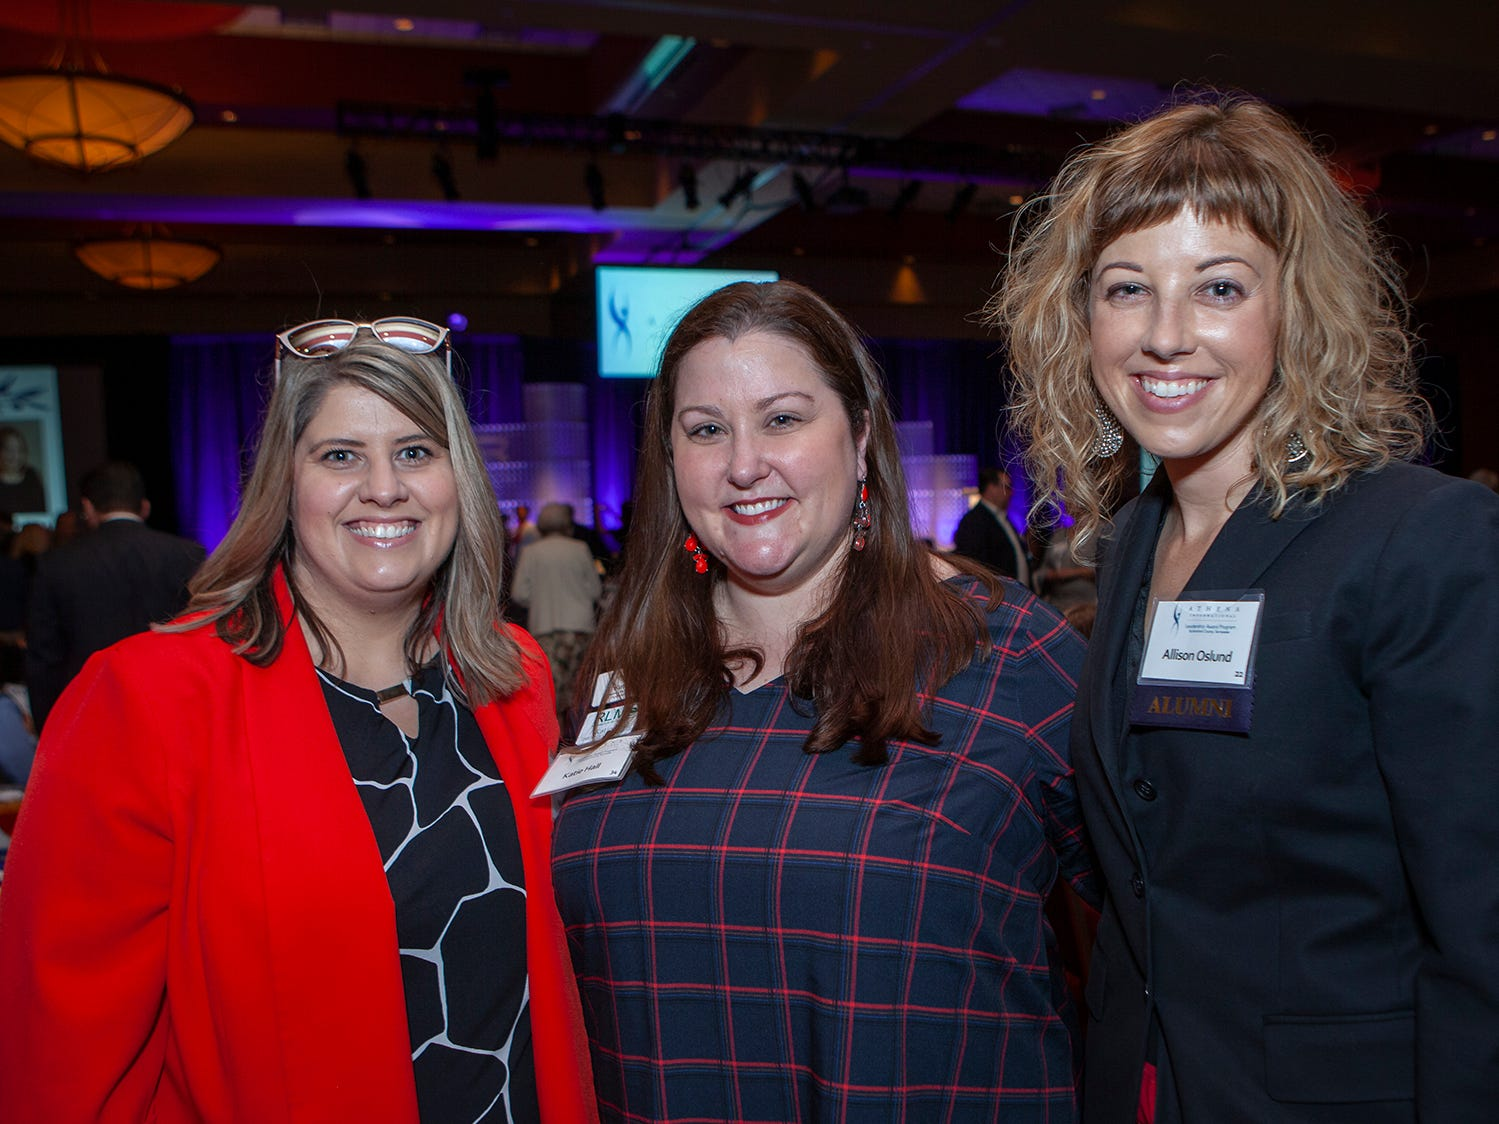 Missy Hartley, Katie Hall and Allison Oslund at the annual ATHENA Leadership Awards, hosted by Rutherford Cable Friday, April 12, 2019 at Embassy Suites Murfreesboro.